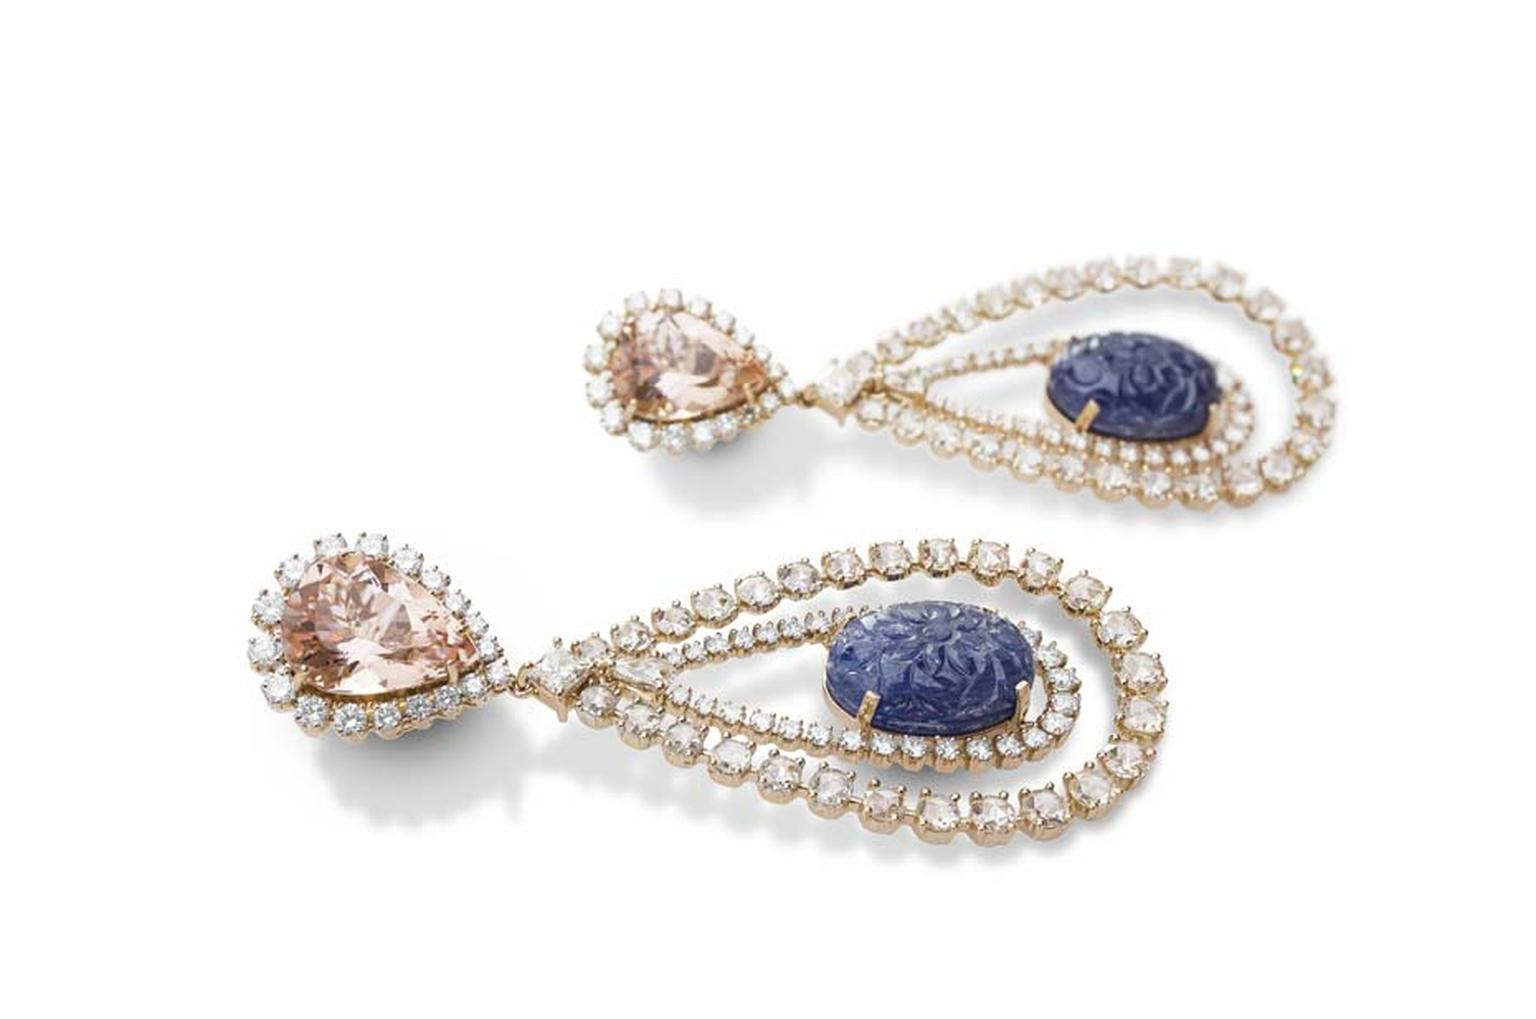 Farah Khan gold earrings featuring diamonds (11.59ct), morganite (11.59ct) and sapphires (34.81ct).